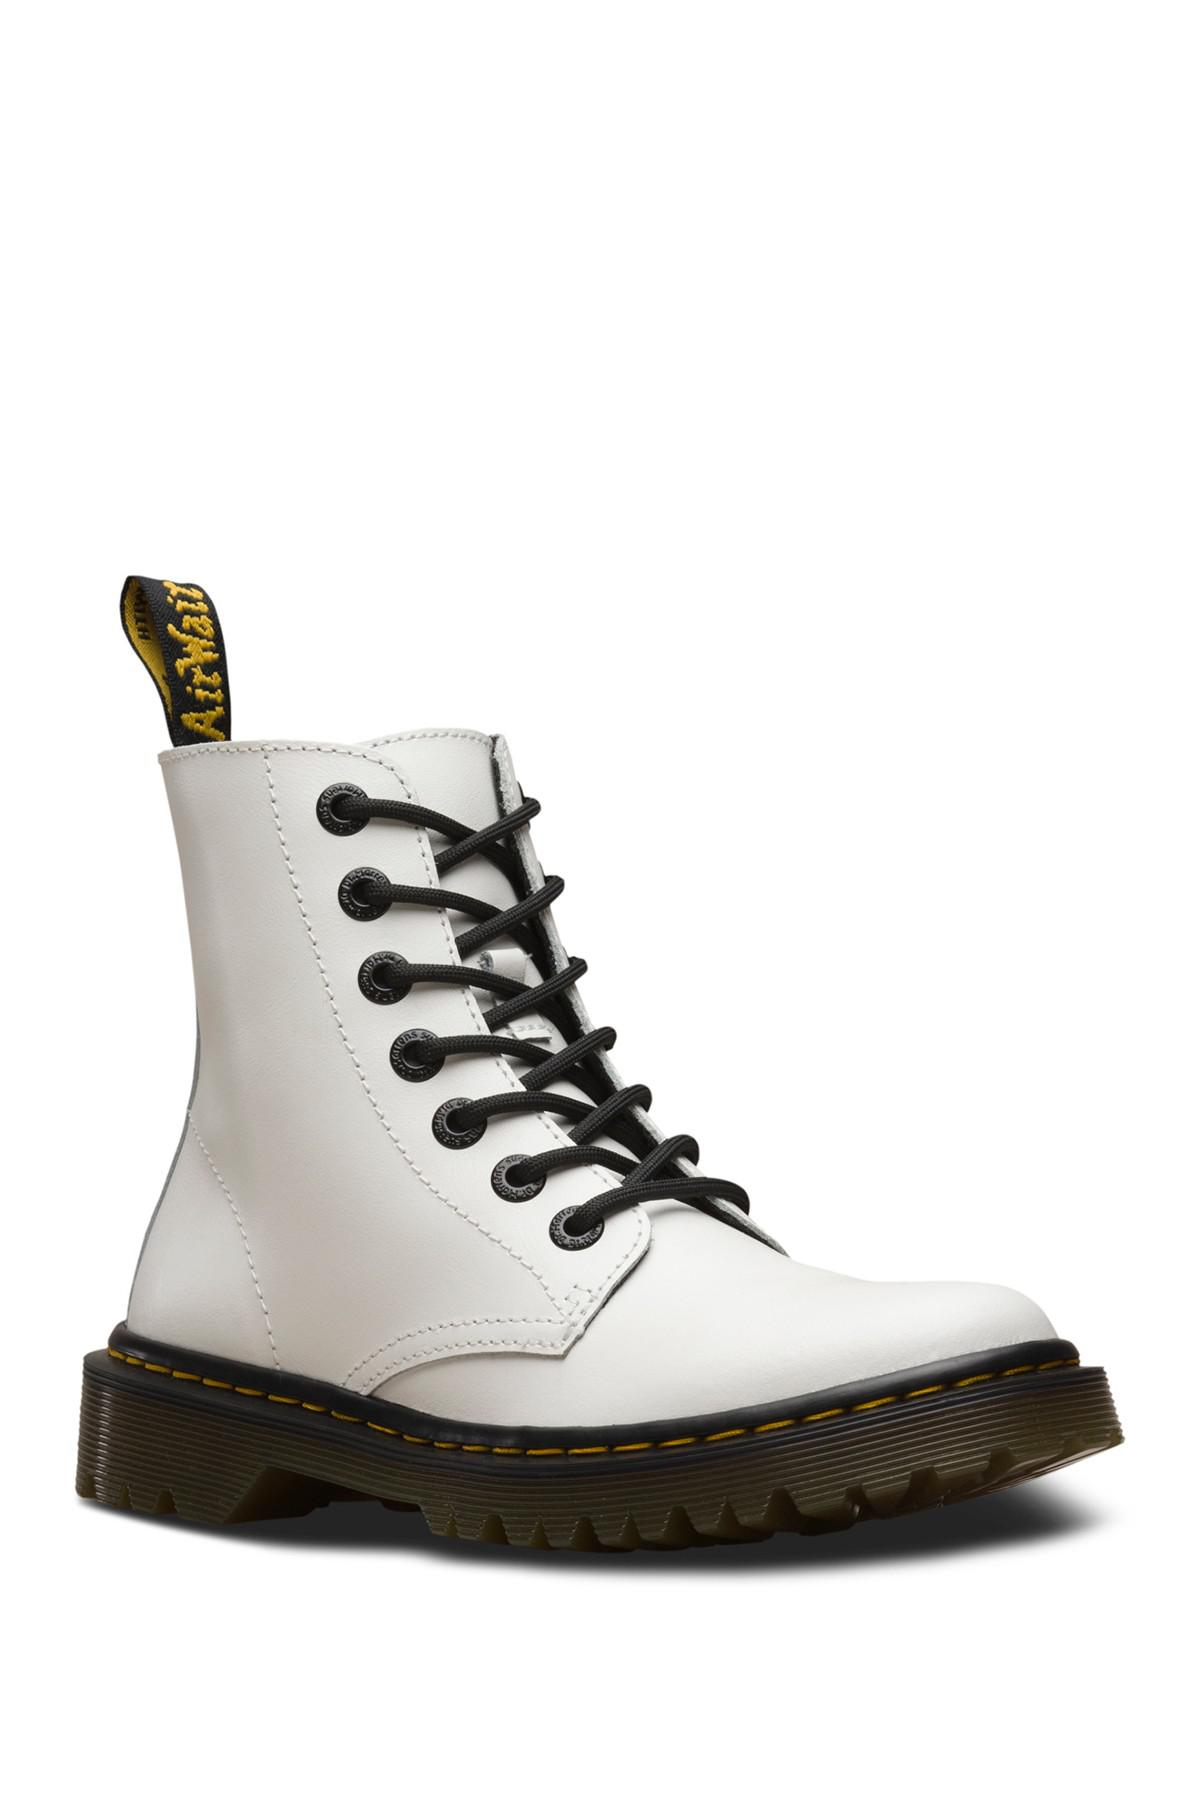 01083e14294 Lyst - Dr. Martens Luana Leather Lace-up Boot in White